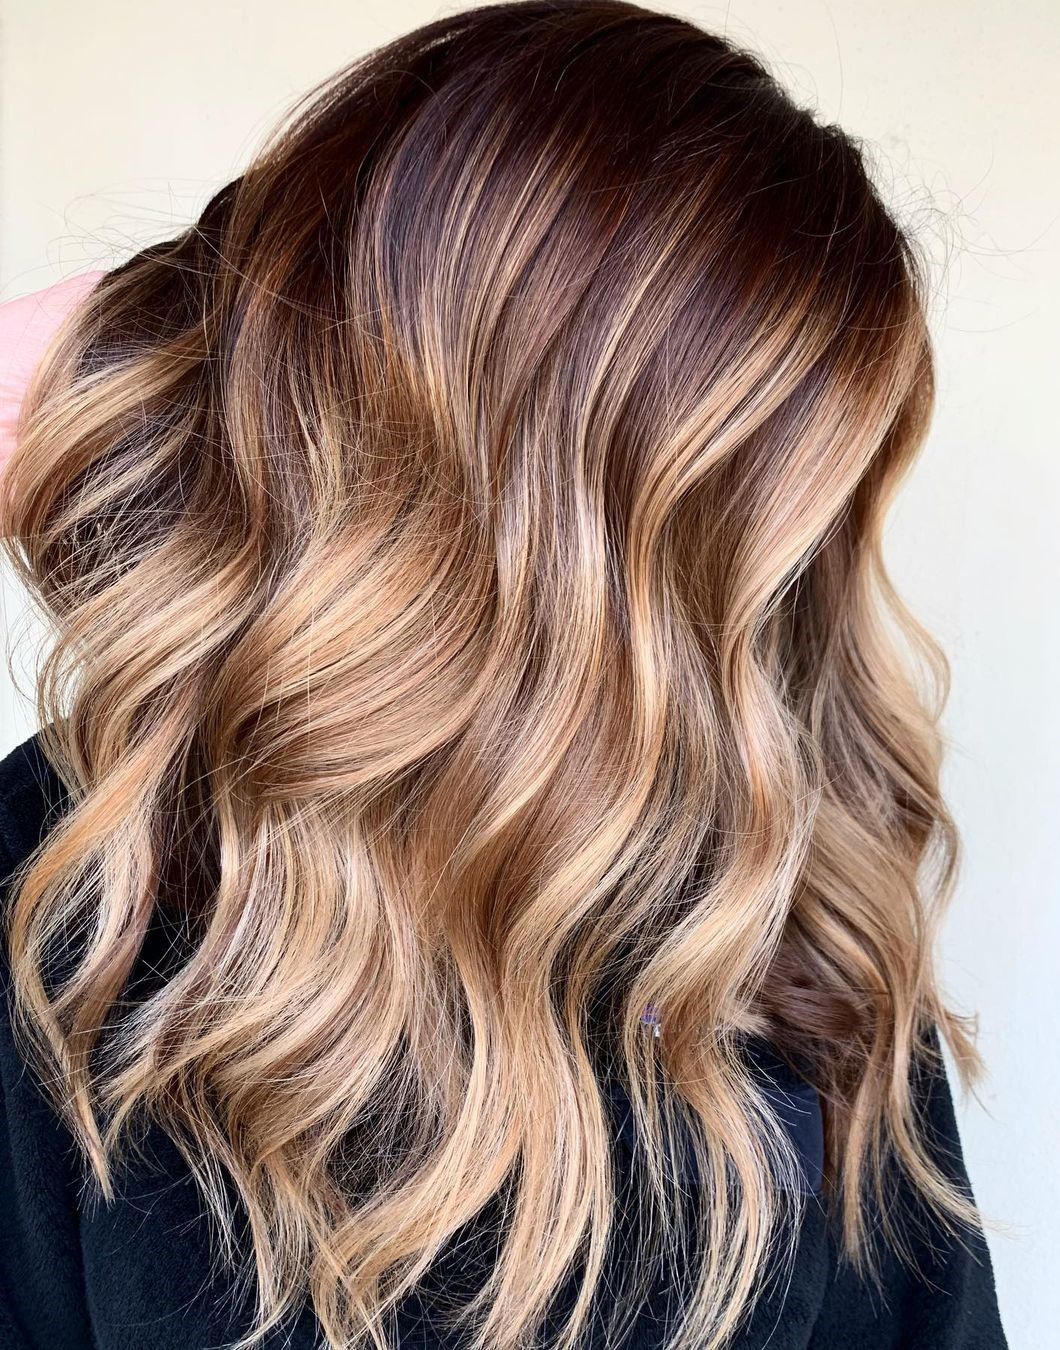 Caramel Blonde Highlights with Brown Roots